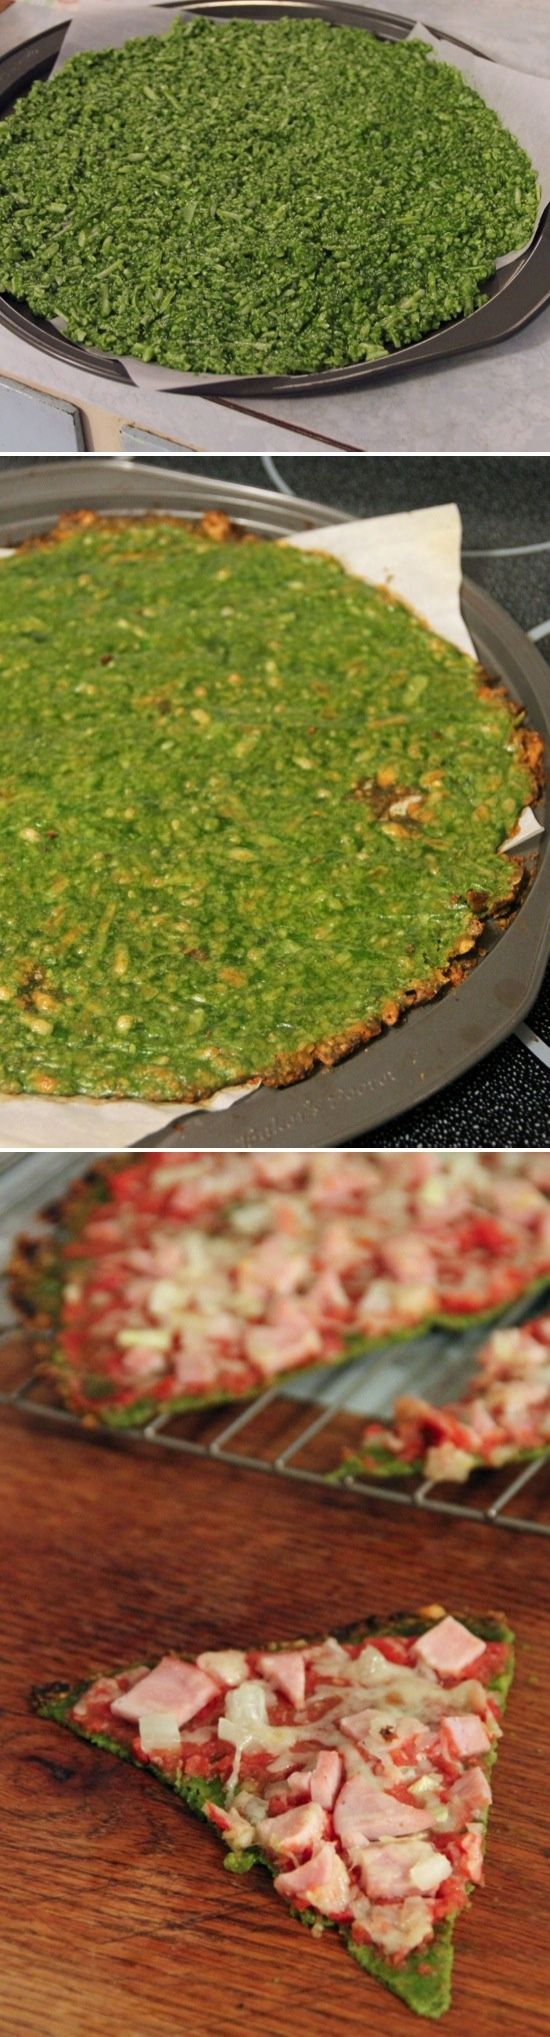 """#primal Spinach Crust Pizza: 2 C raw spinach leaves; 1 egg; 1 C shredded cheese; spices 